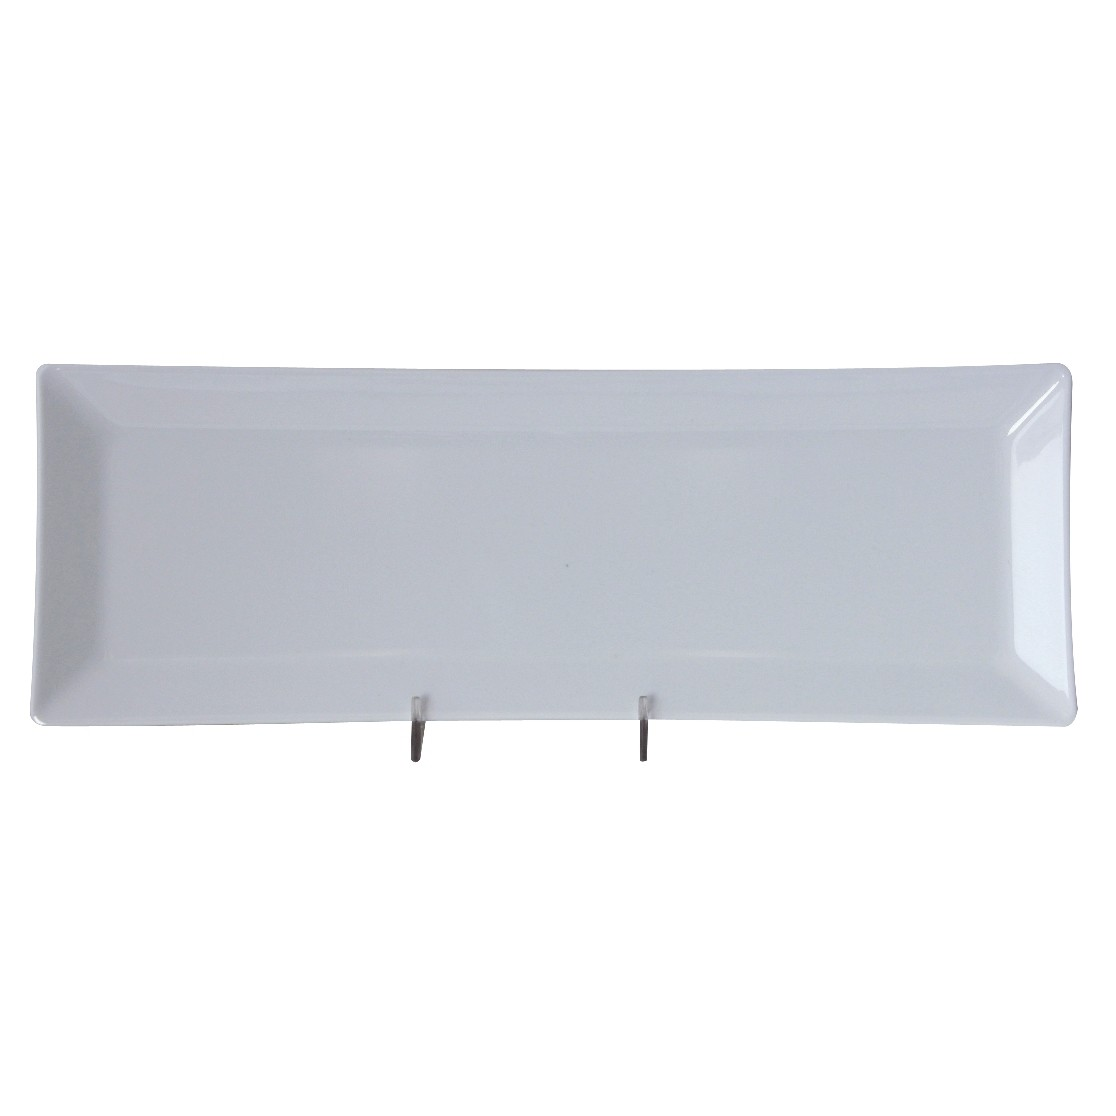 "Thunder Group 29115WT Classic White Melamine Rectangular Plate 15"" x 5-1/4"""